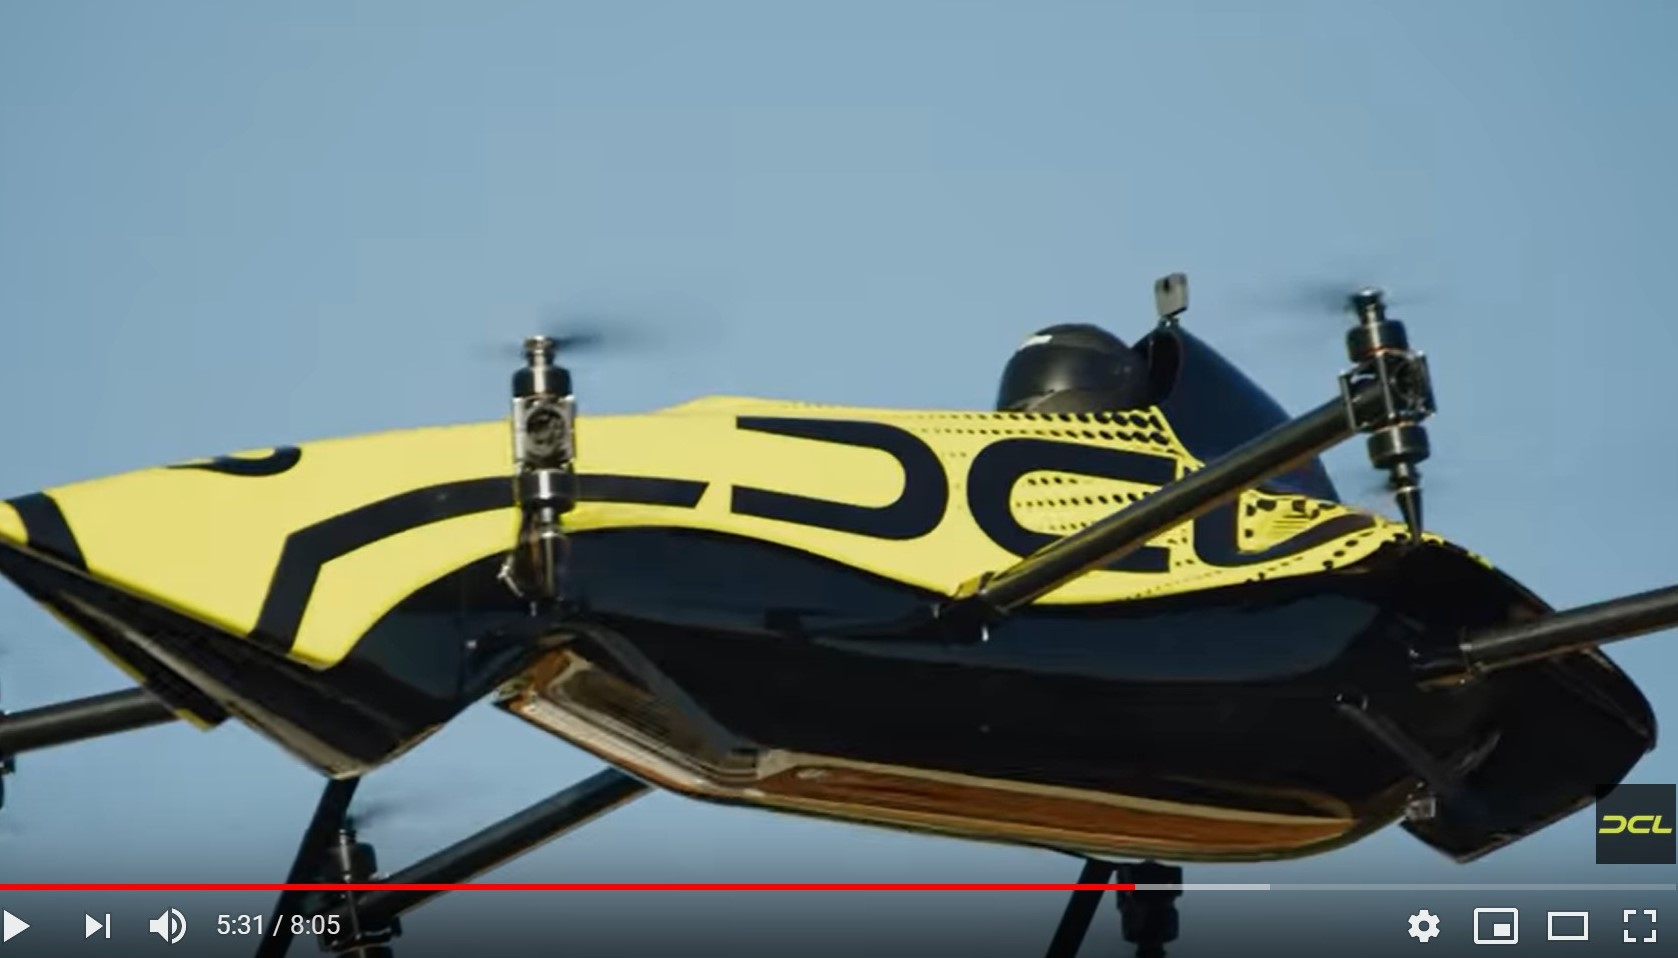 The Groundbreaking Manned Aerobatic Drone – DCL